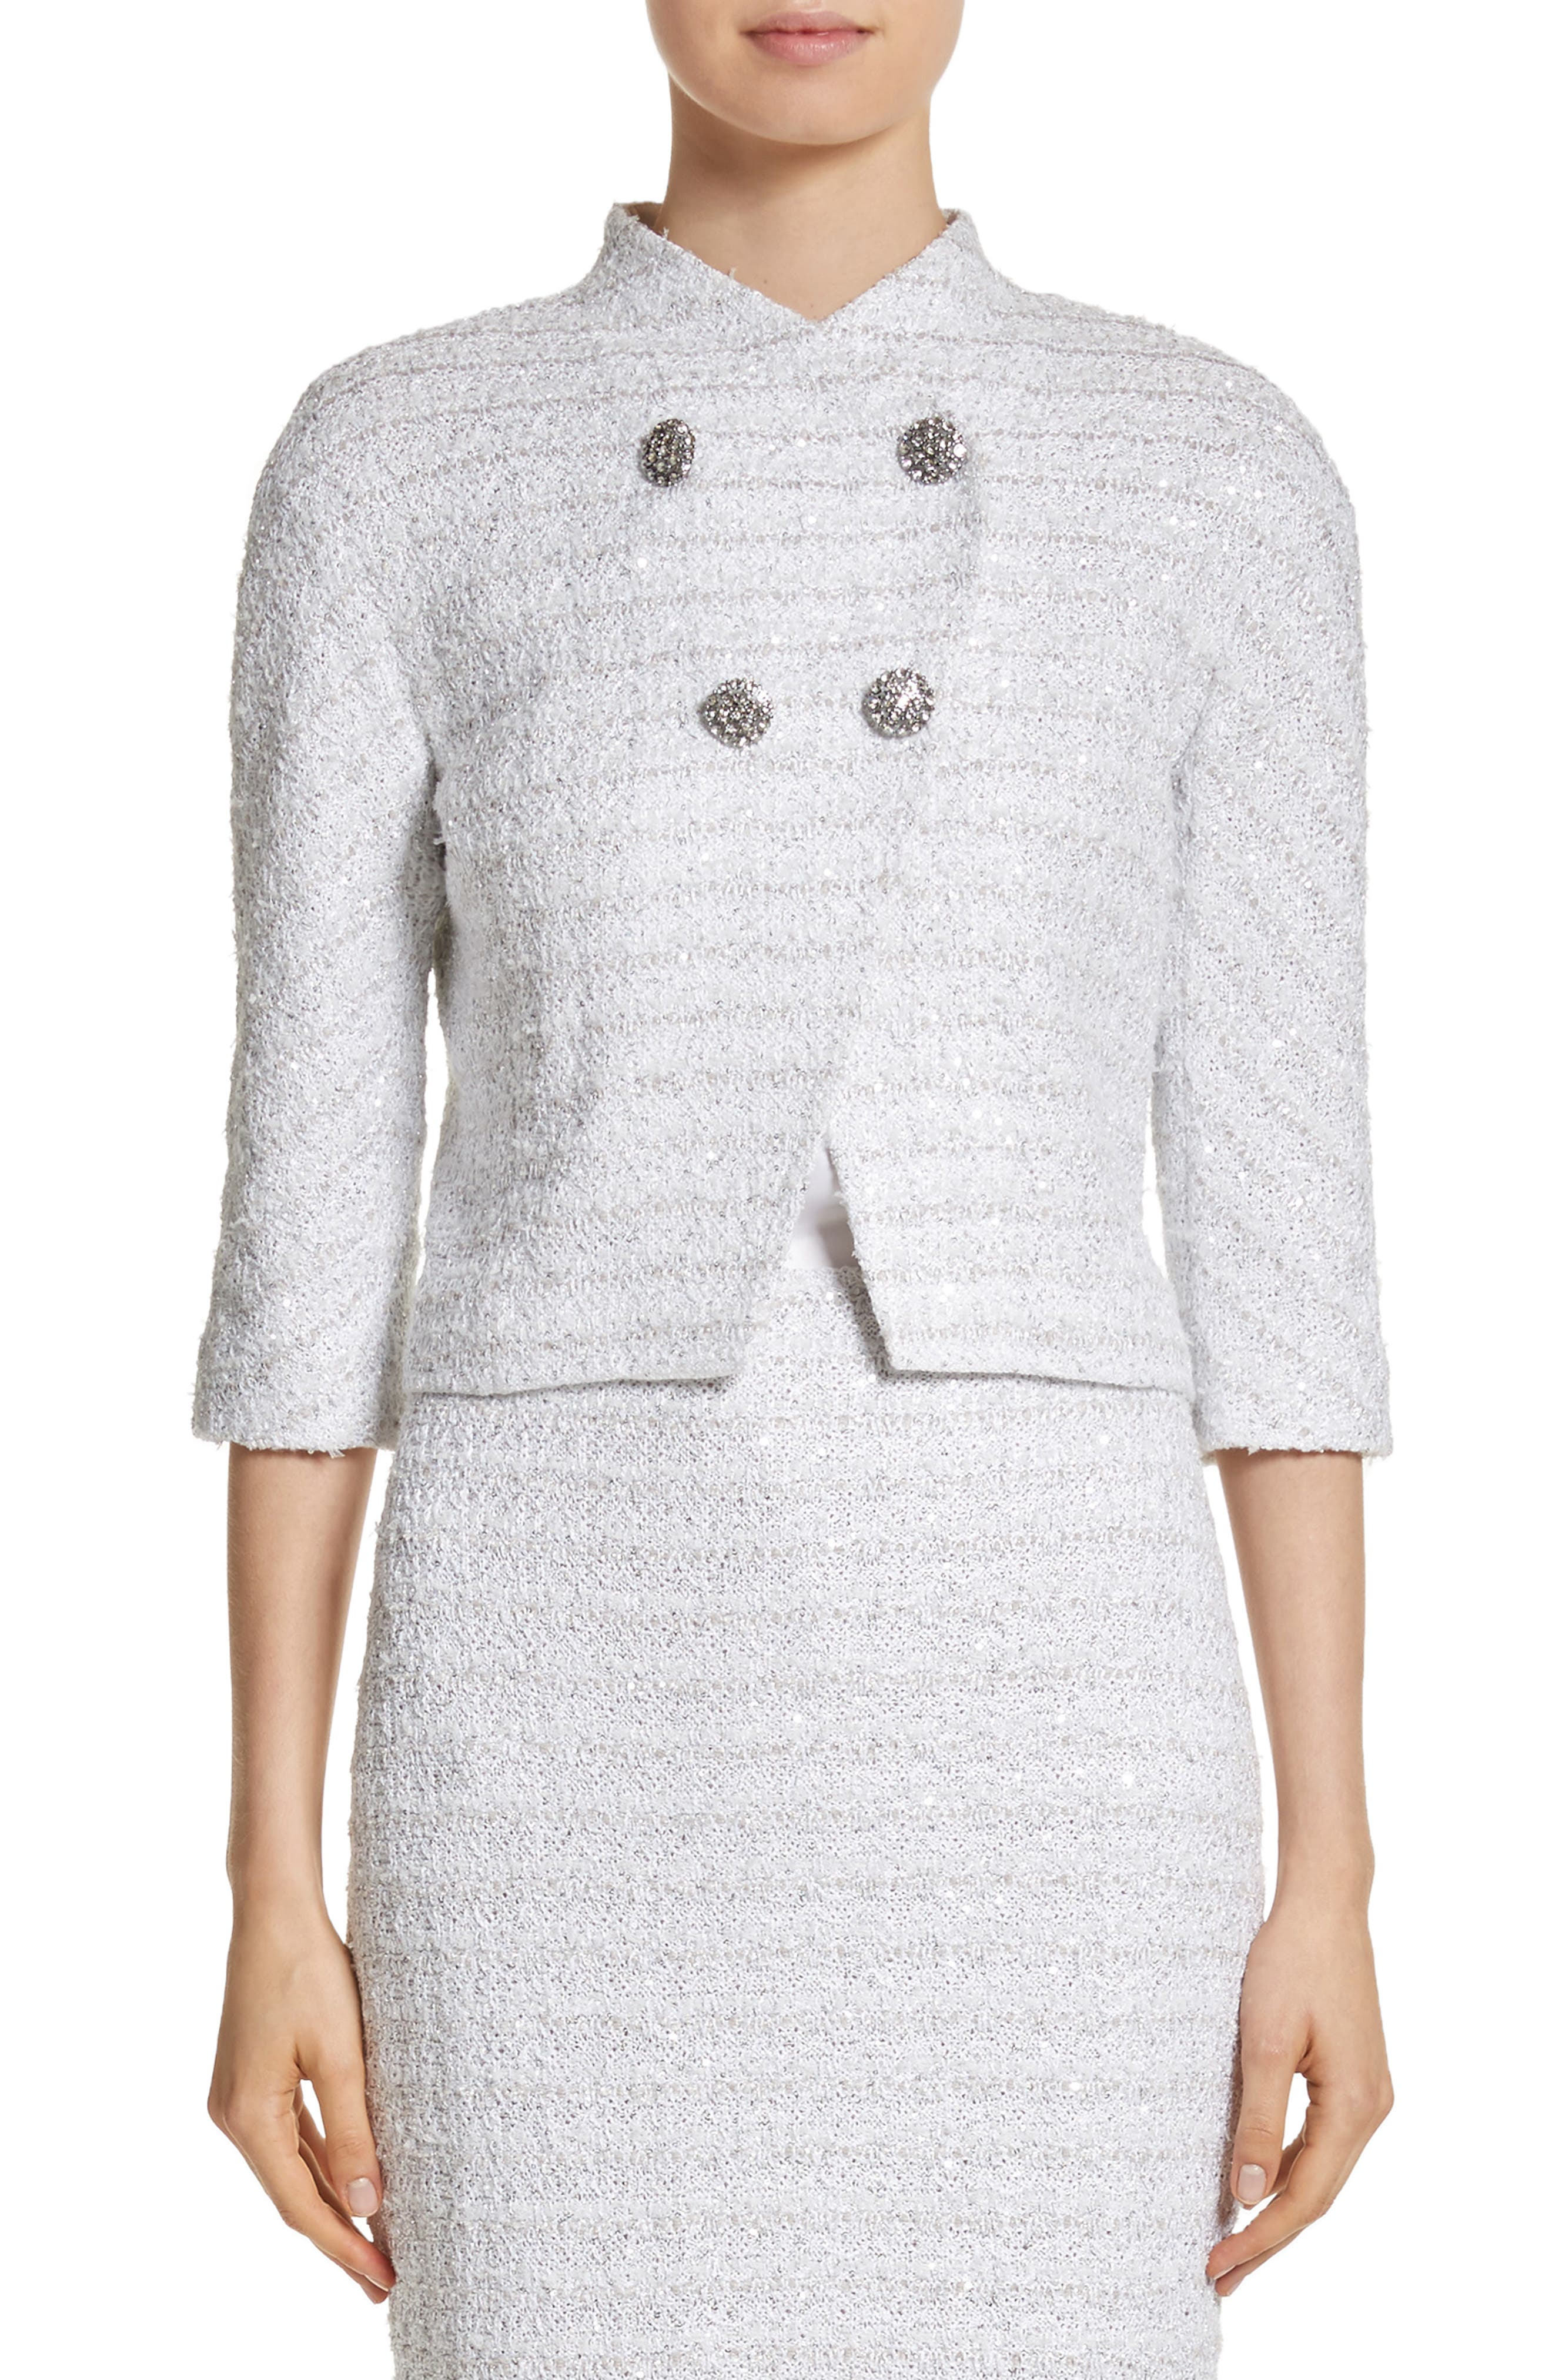 Frosted Metallic Tweed Jacket,                         Main,                         color,